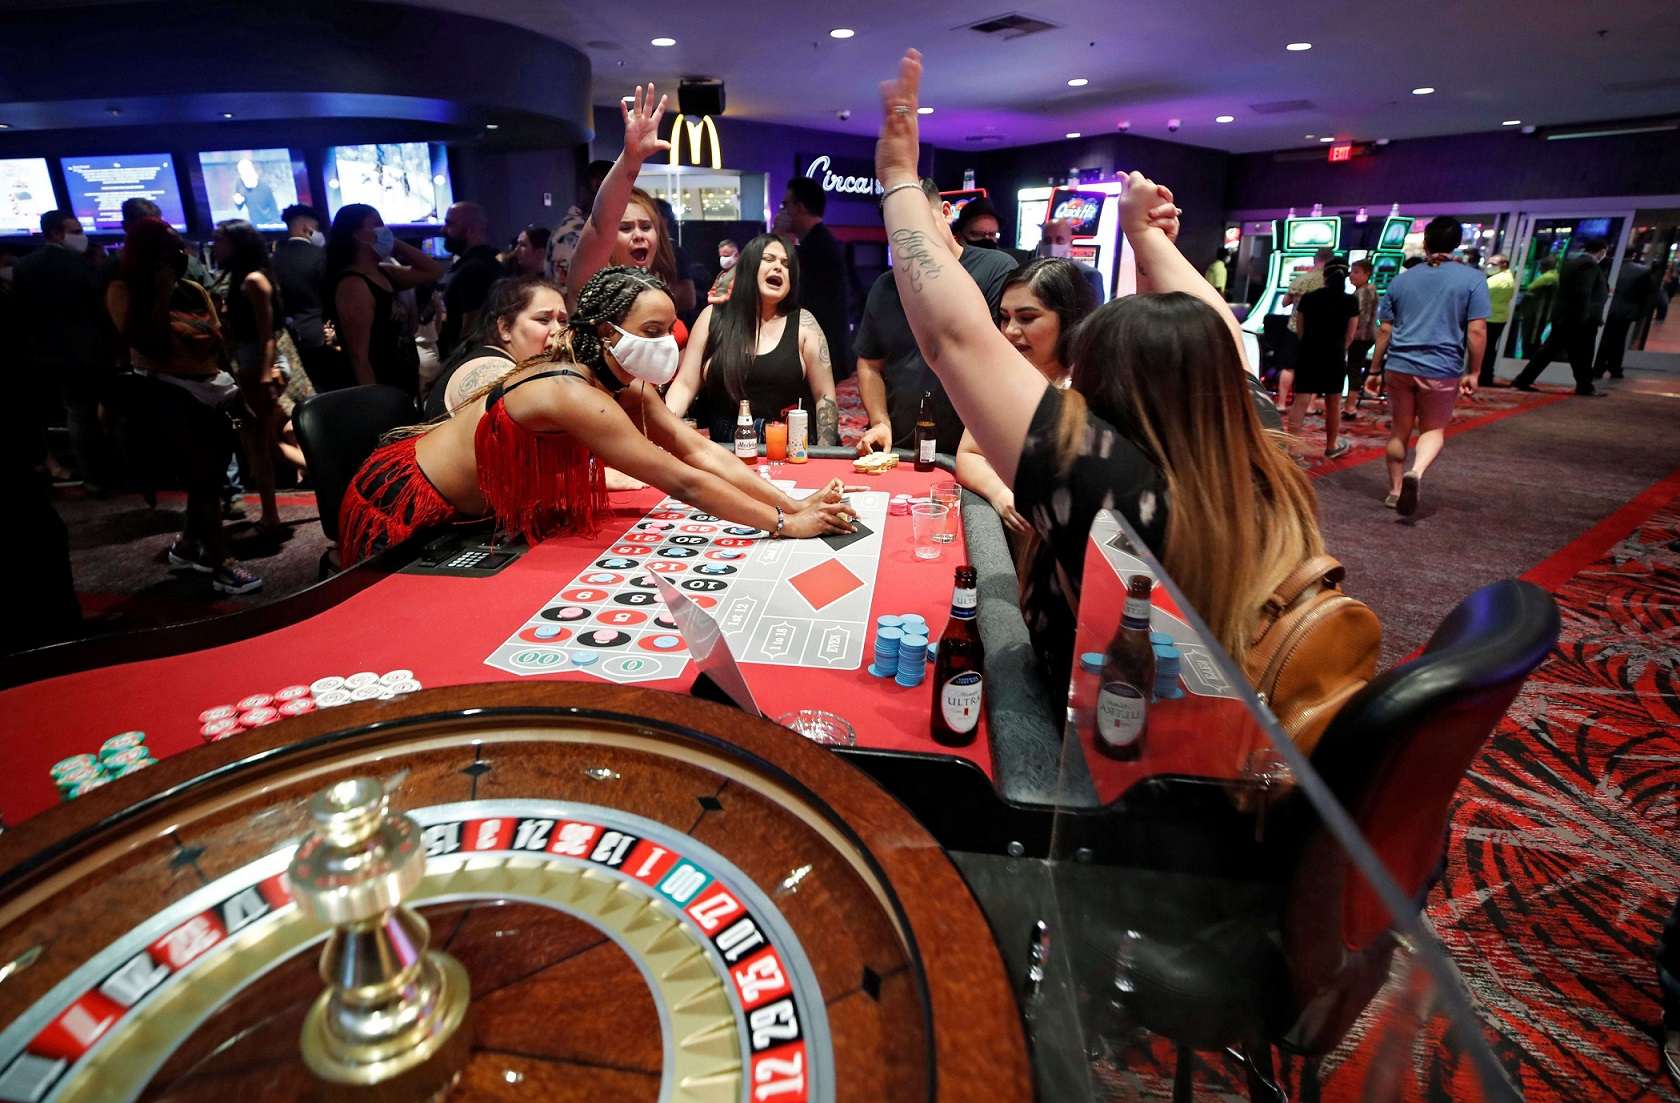 How To Buy (A) Casino On Tight Funds